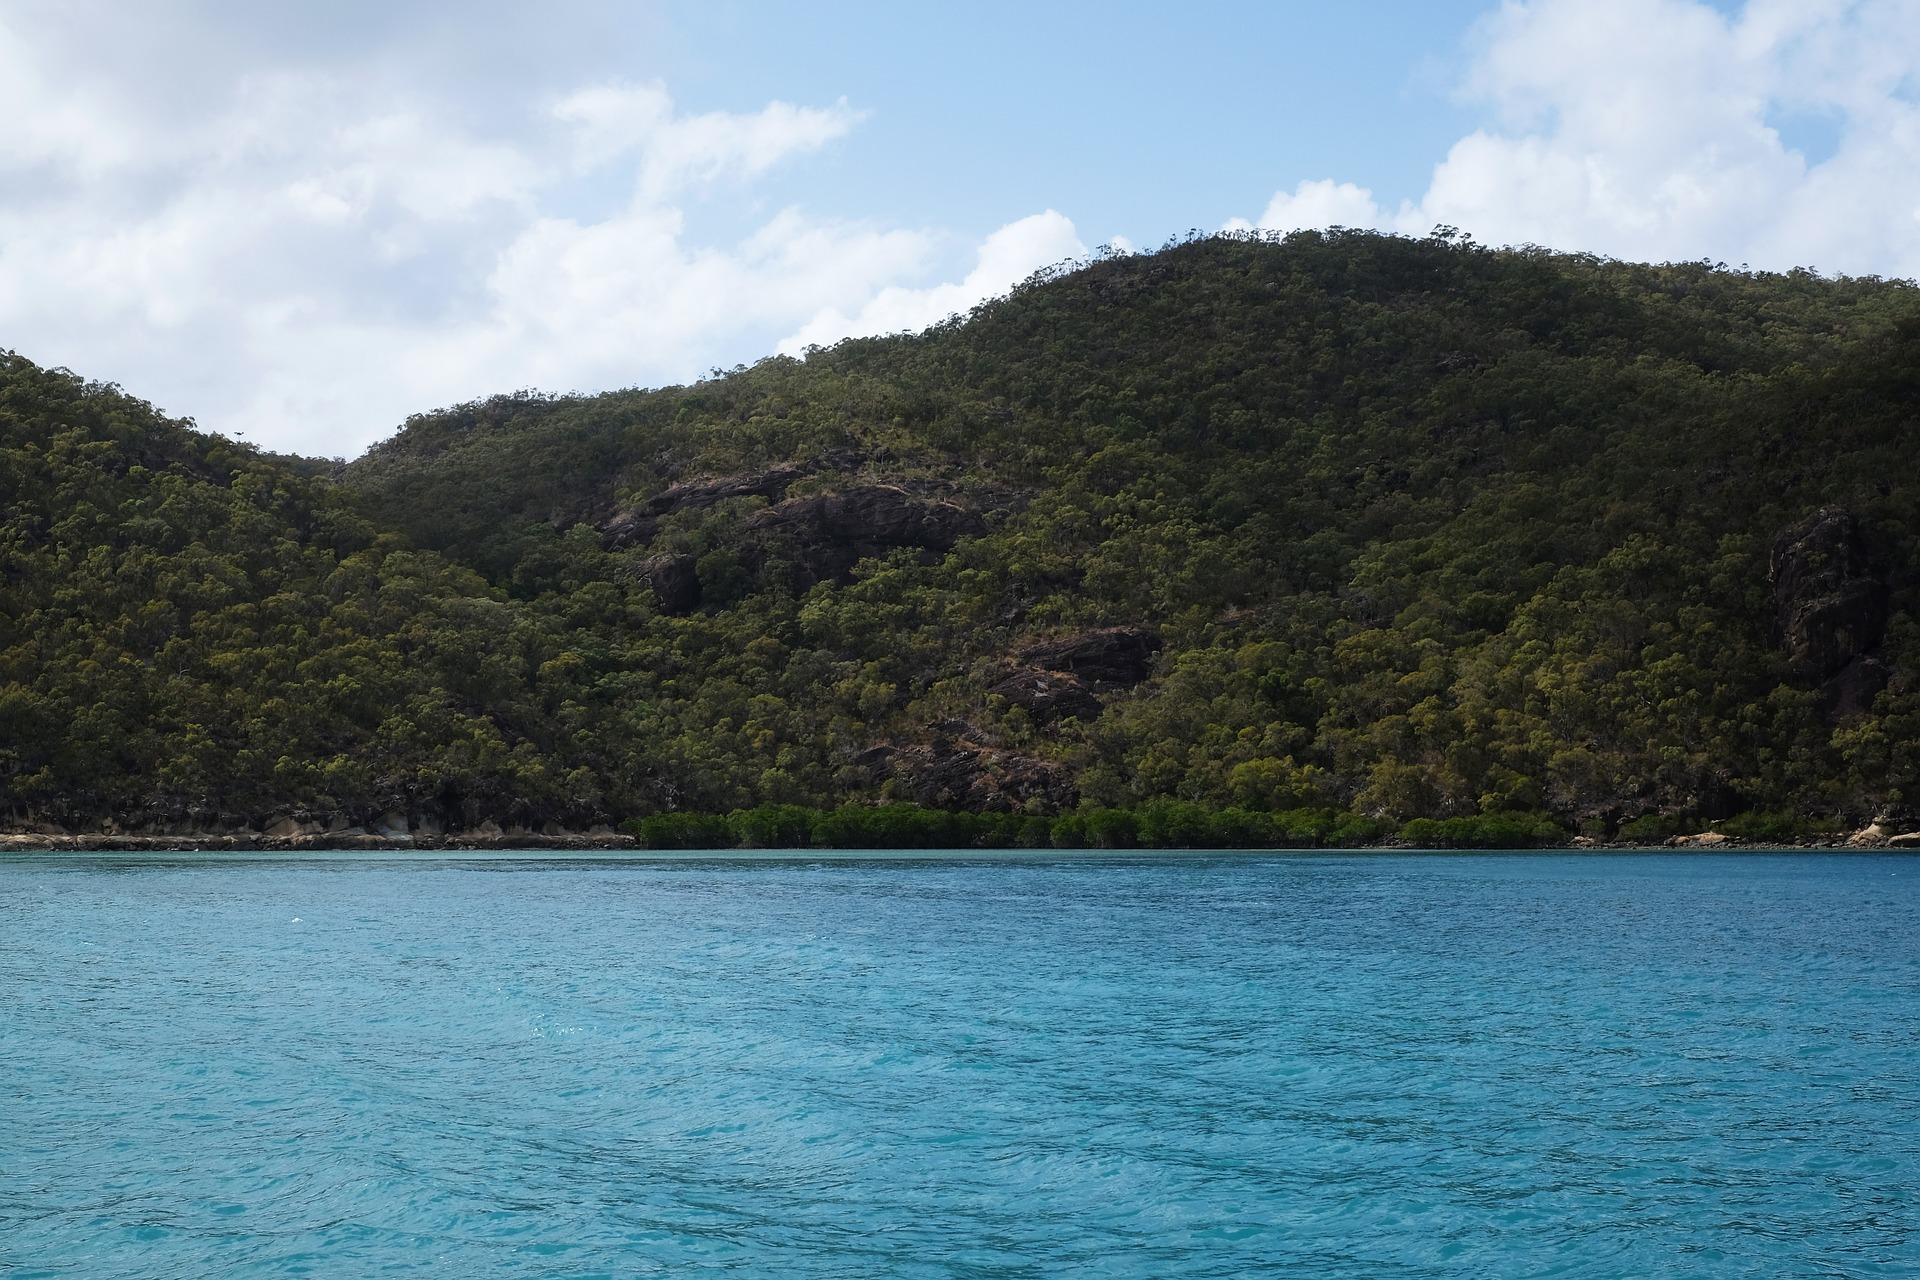 ocean and island in the whitsundays